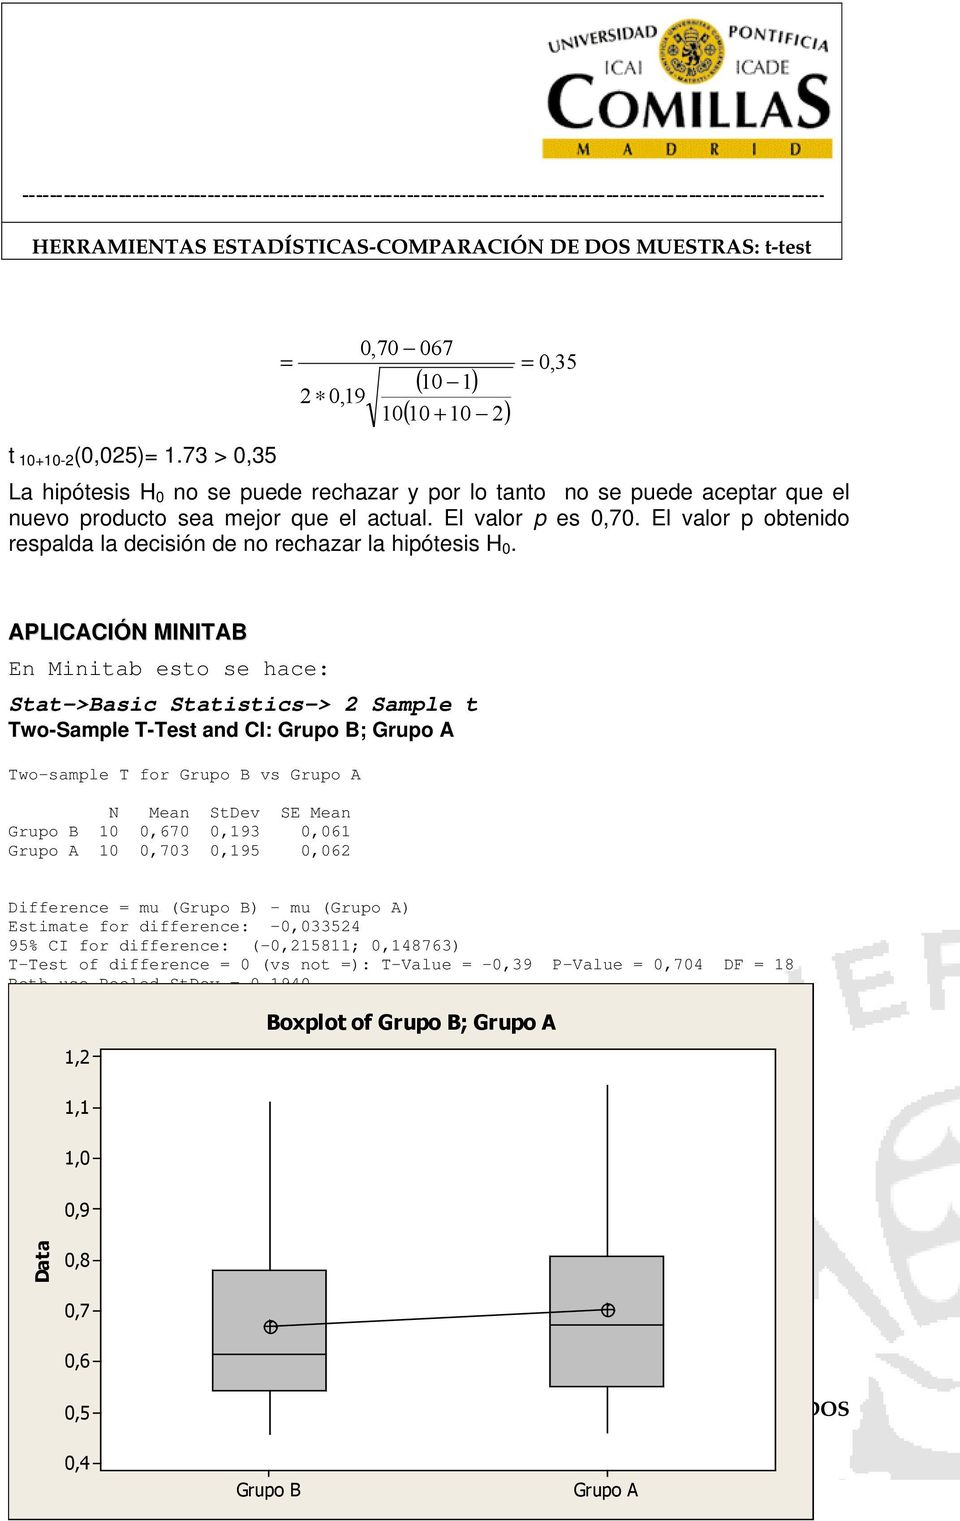 APLICACIÓN MINITAB En Minitab esto se hace: Stat->Basic Statistics-> Sample t Two-Sample T-Test and CI: Grupo B; Grupo A Two-sample T for Grupo B vs Grupo A N Mean StDev SE Mean Grupo B 0 0,670 0,93